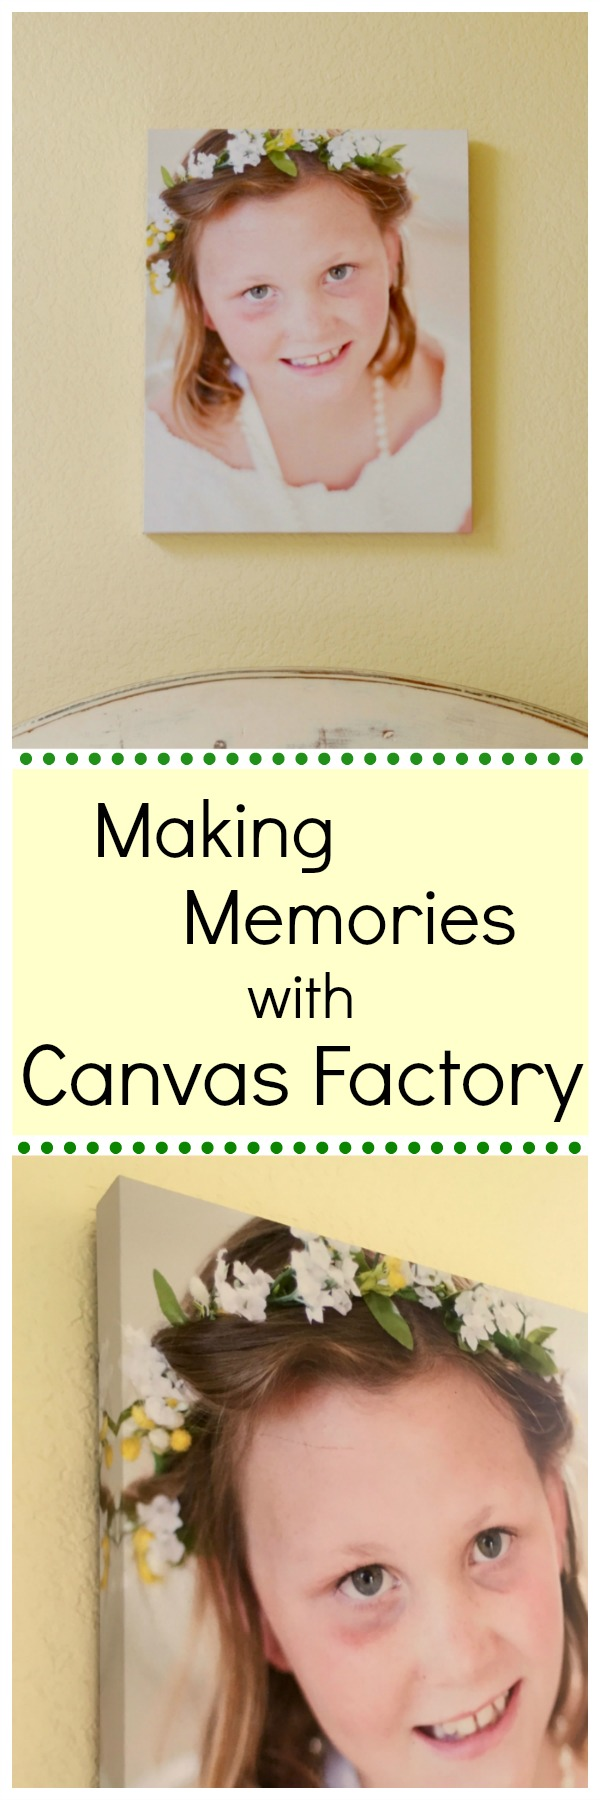 Making Memories with Canvas Factory - Simple Sojourns